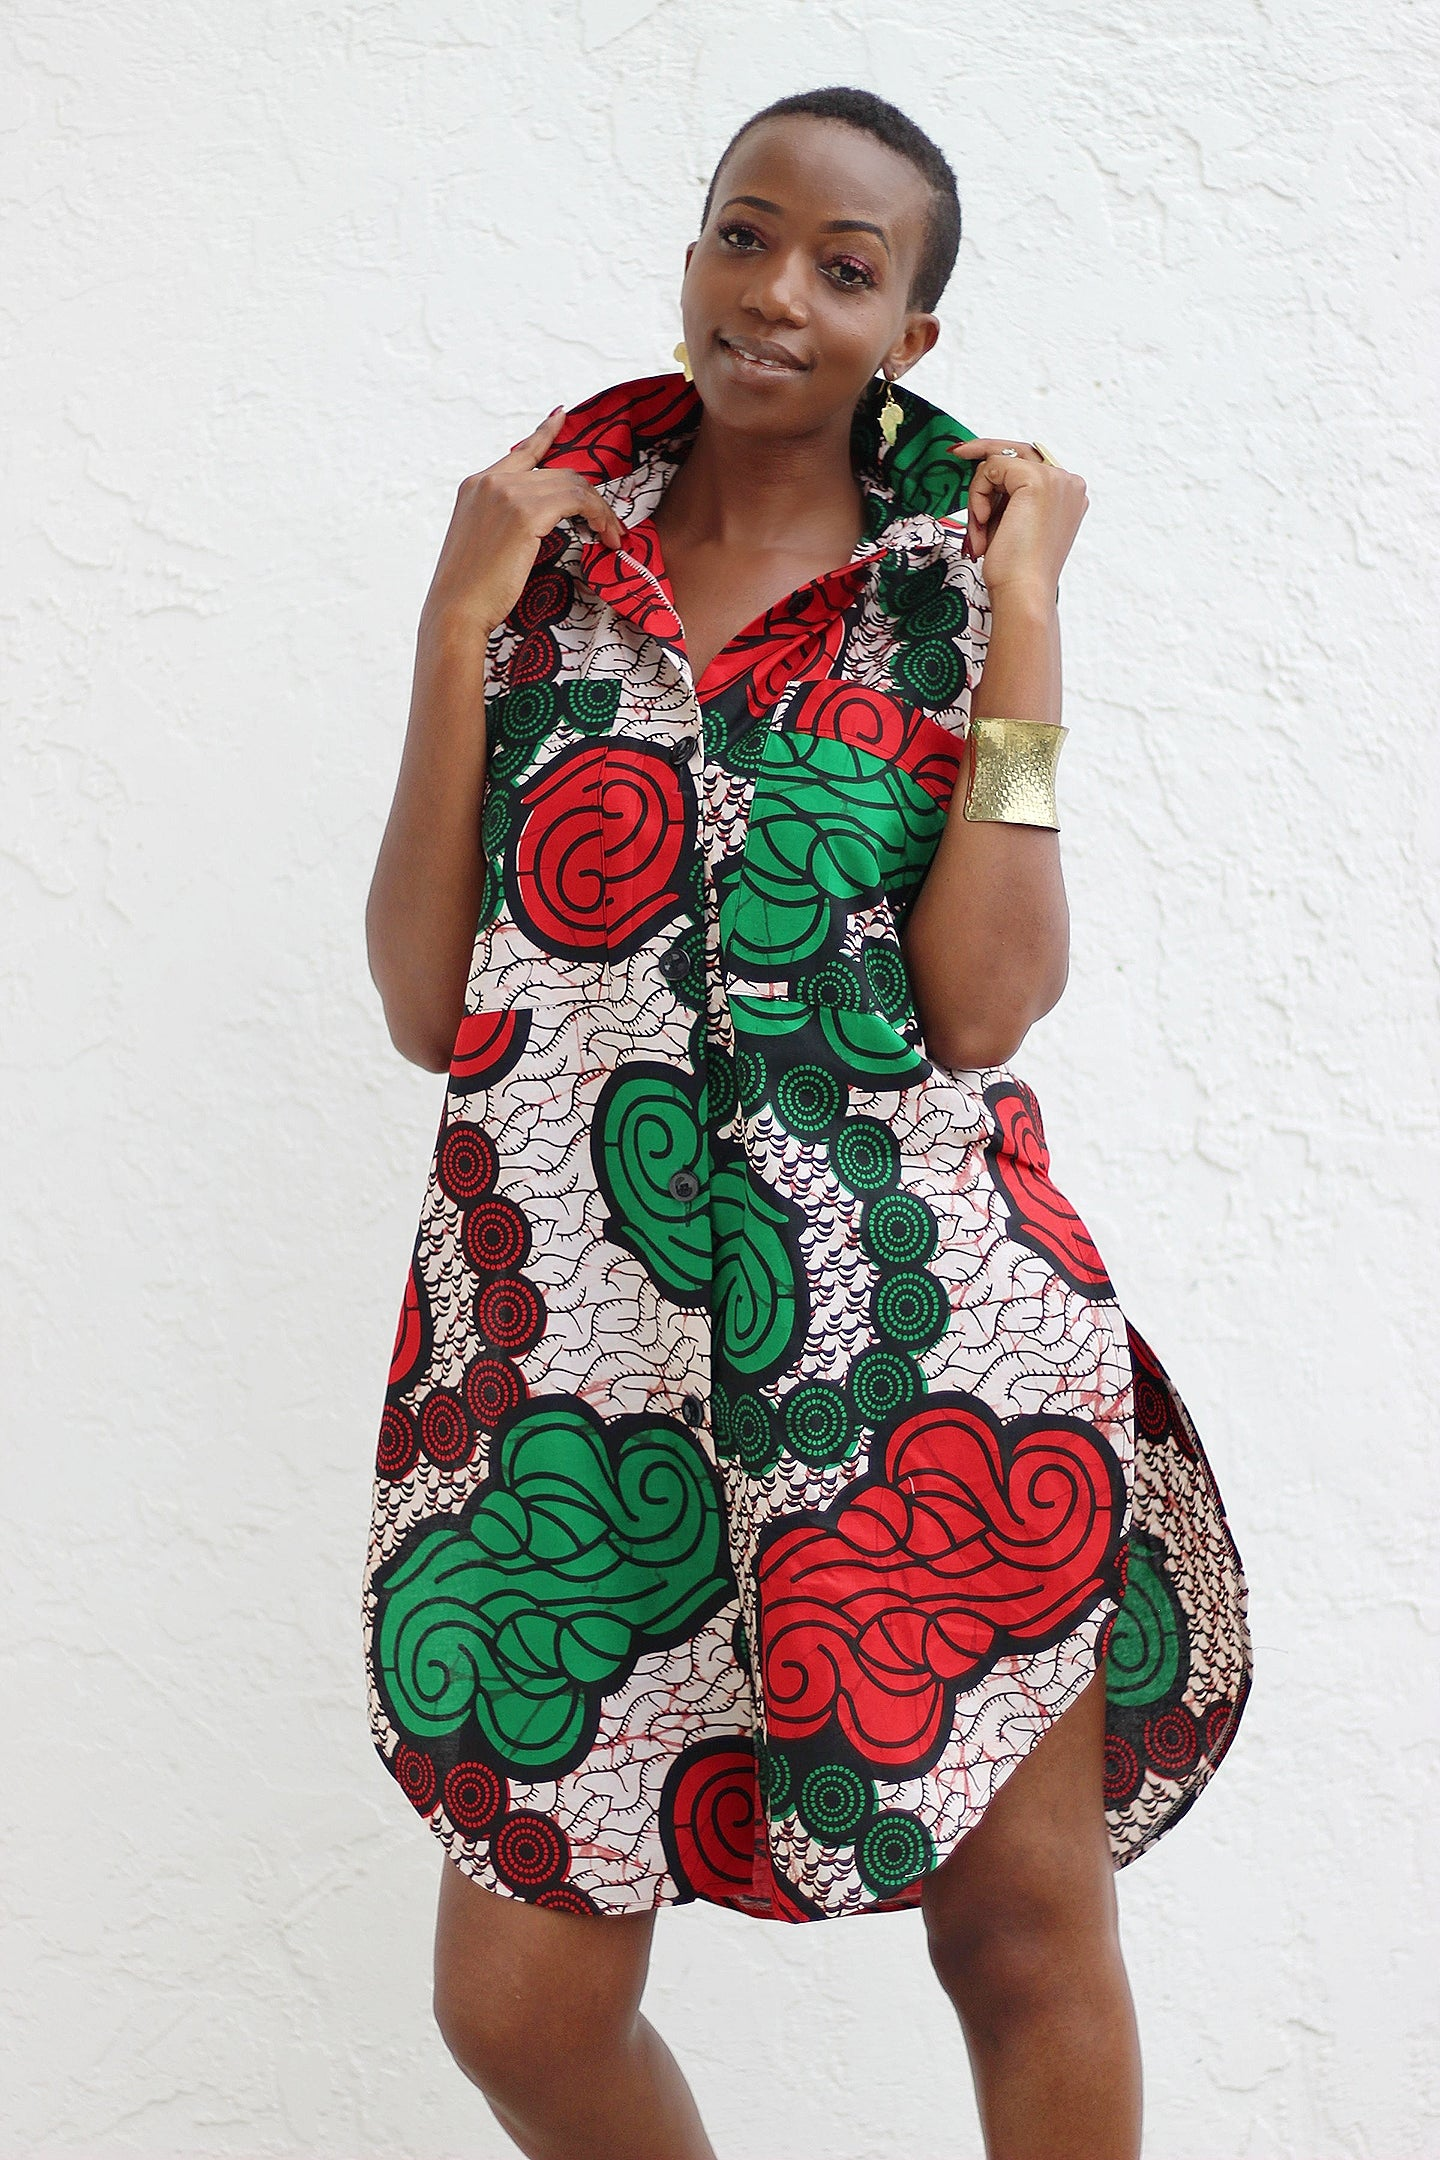 African Print /Ankara /Kitenge Zao Dress Top - Red/Green/BaigePrint - Africas Closet